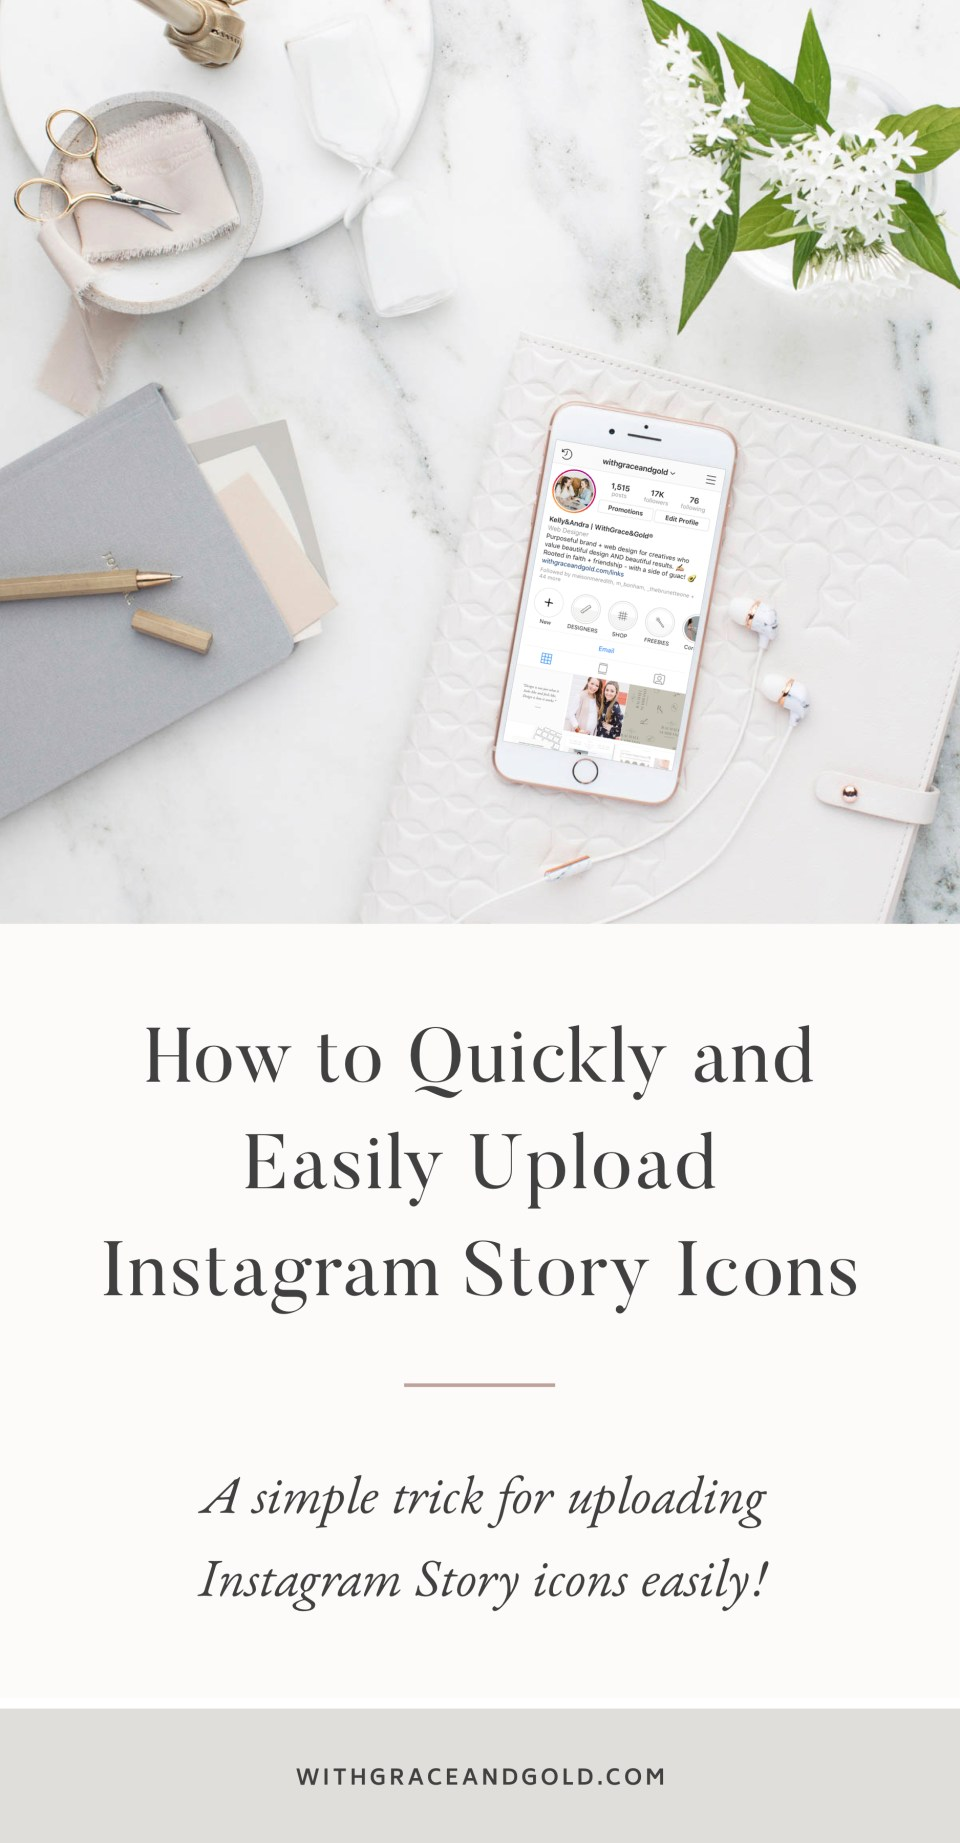 How to Quickly and Easily Upload Instagram Story Icons